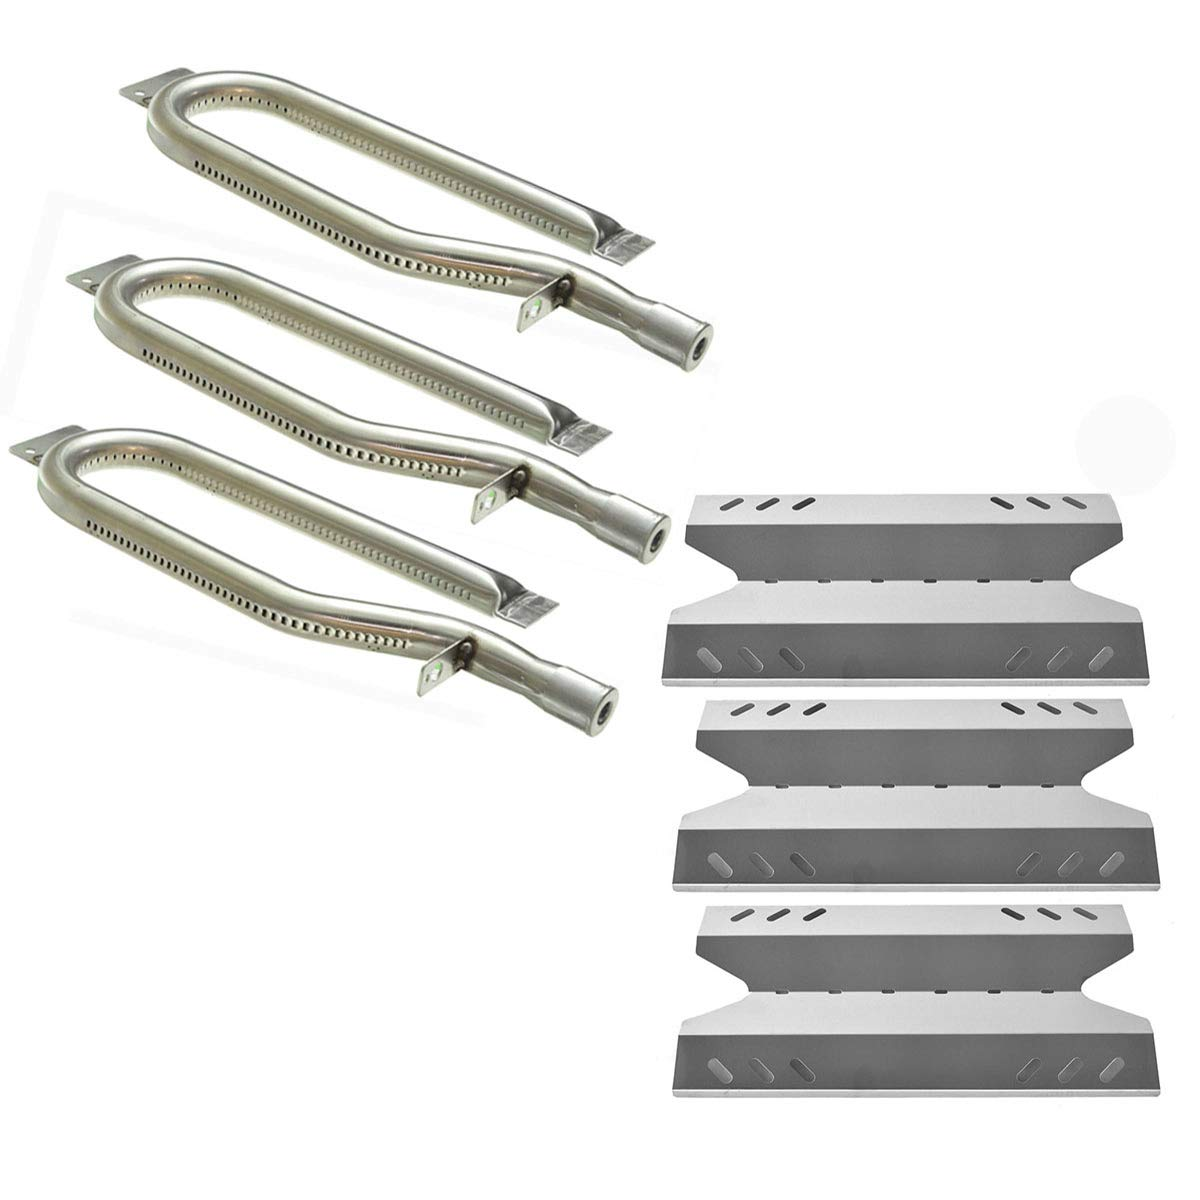 Hisencn Gas Grill Repair Kit SS Burner, Non-Magnetic Stainless Steel Heat Plate Parts -3pack Replacement for Members Mark BQ05046-6, BBQ Pro, Sam's Club, Outdoor Gourmet